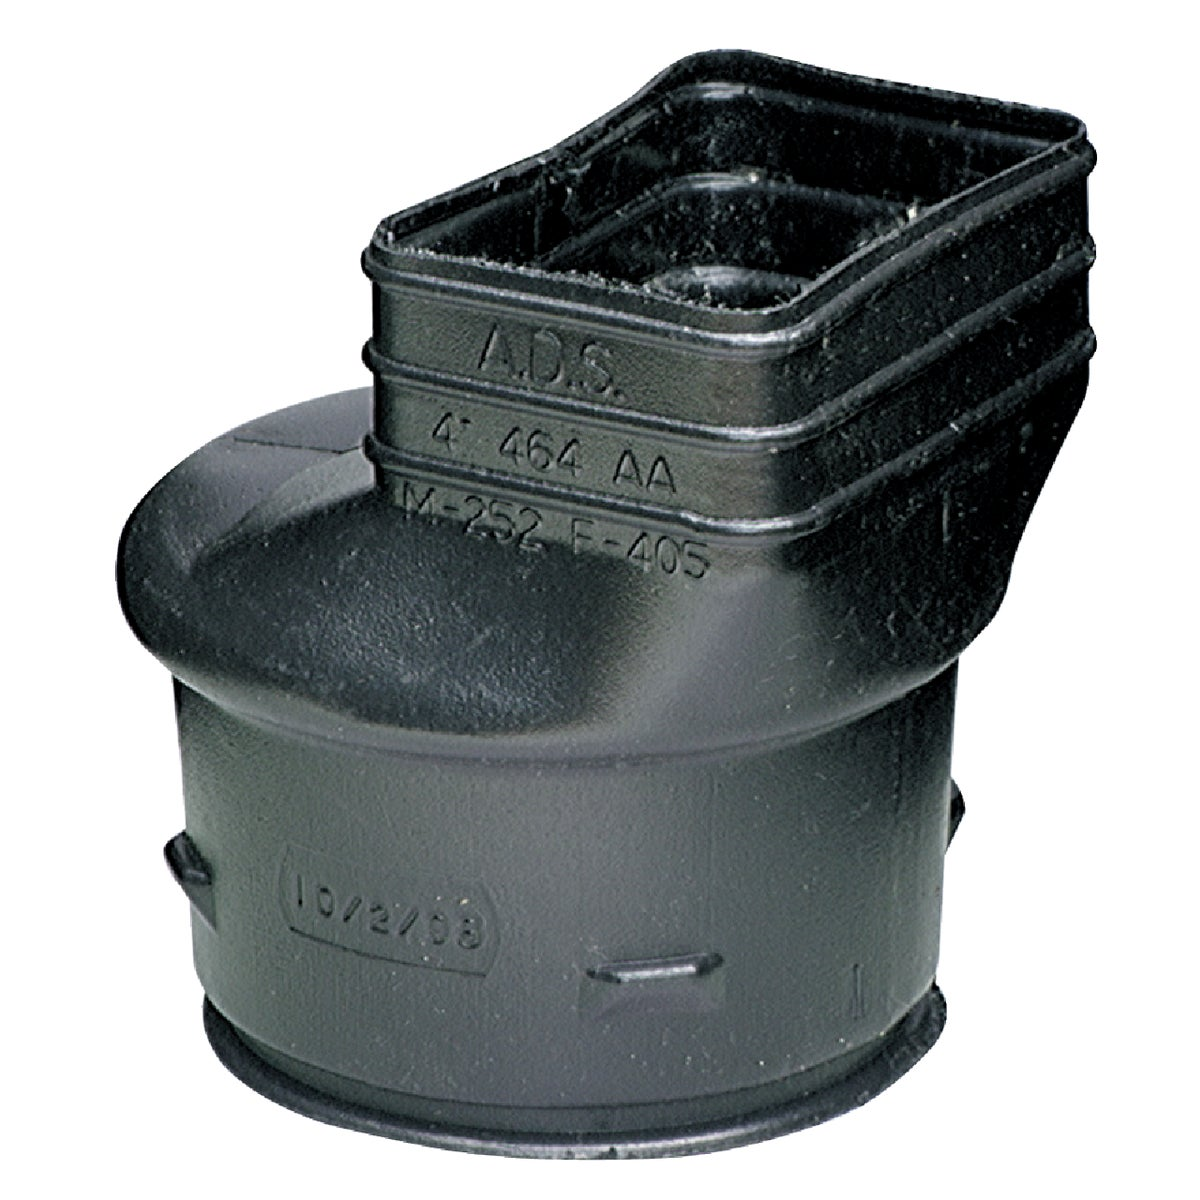 2X3 DOWNSPOUT ADAPTER - 464AA by Advanced Drainage Sy